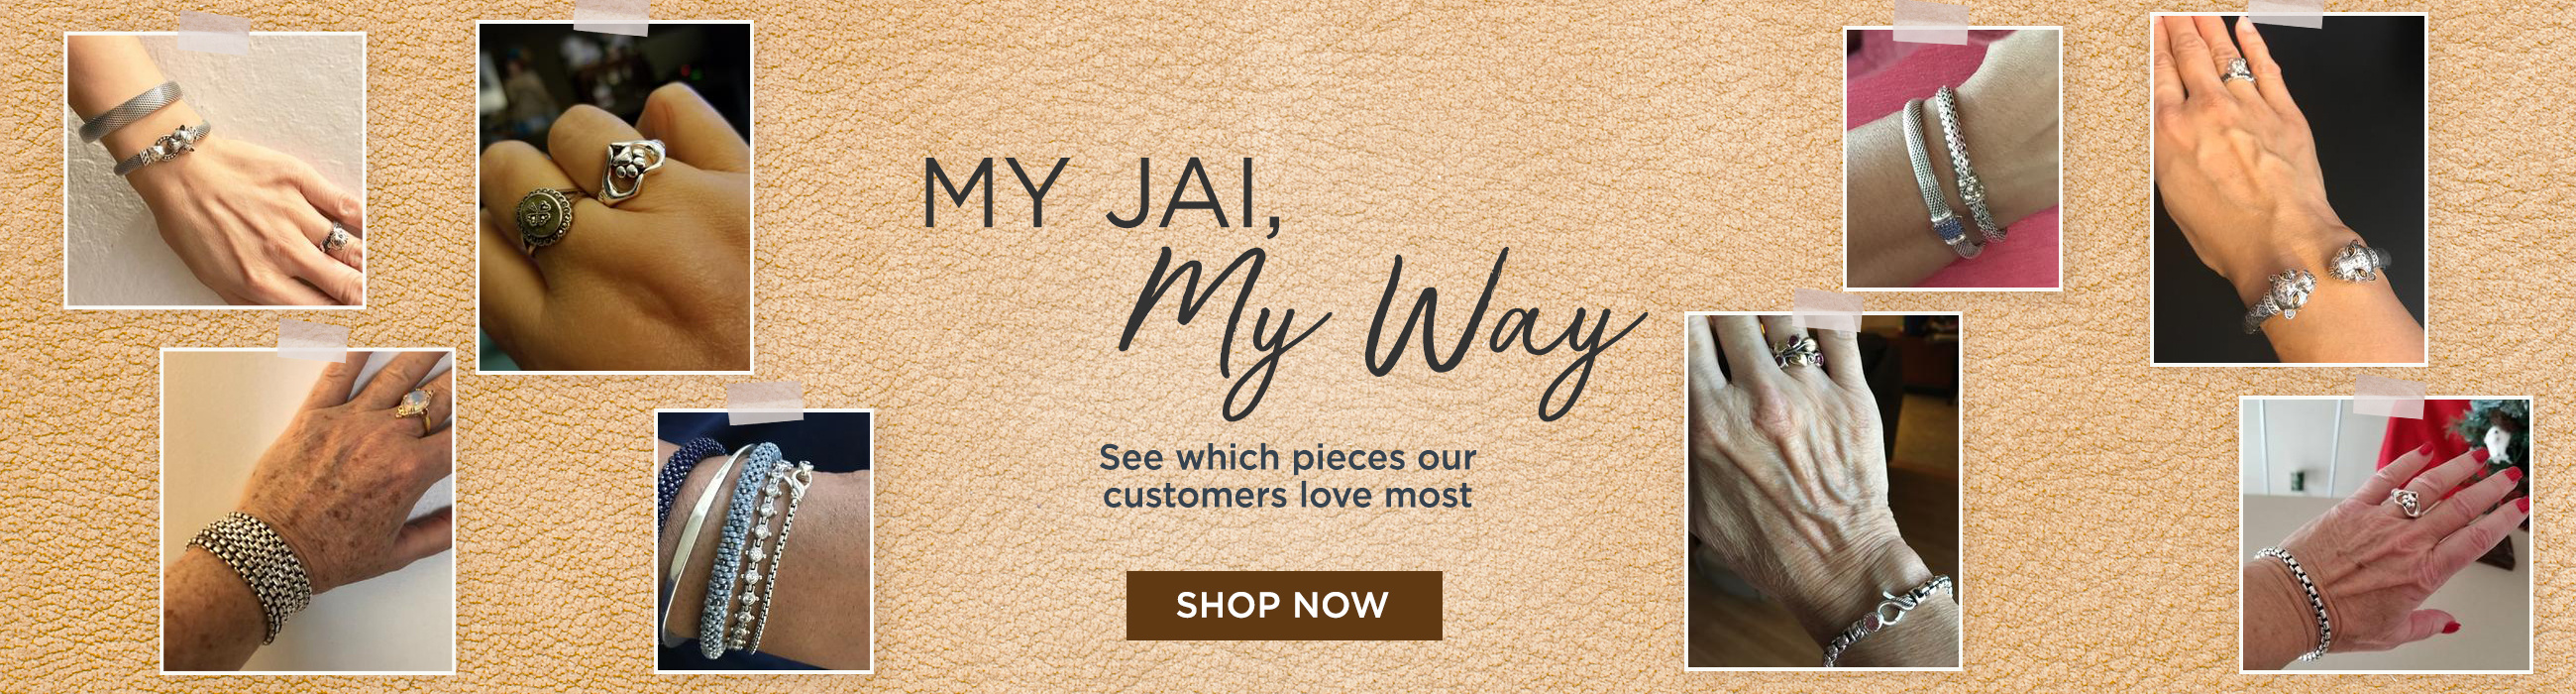 My JAI, My Way  See which pieces our customers love most SHOP NOW